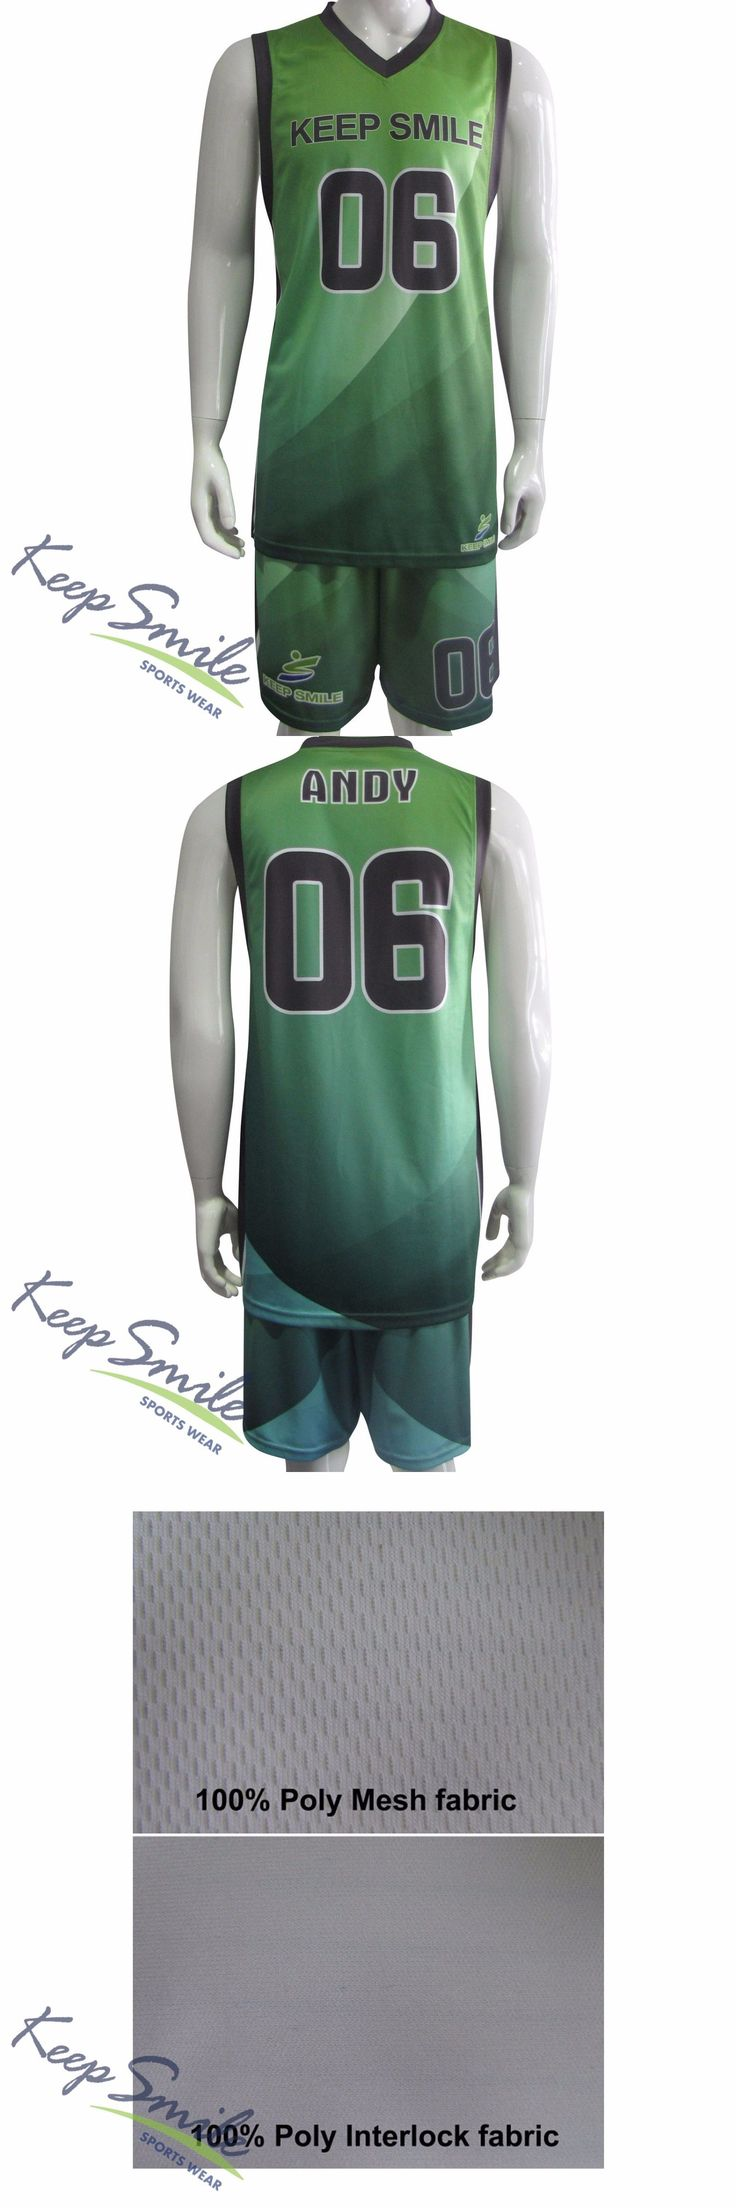 Women 158966: 10 Set Custom Sublimated Youth Girl'S Basketball Team Uniform Jersey And Short -> BUY IT NOW ONLY: $278.99 on eBay!